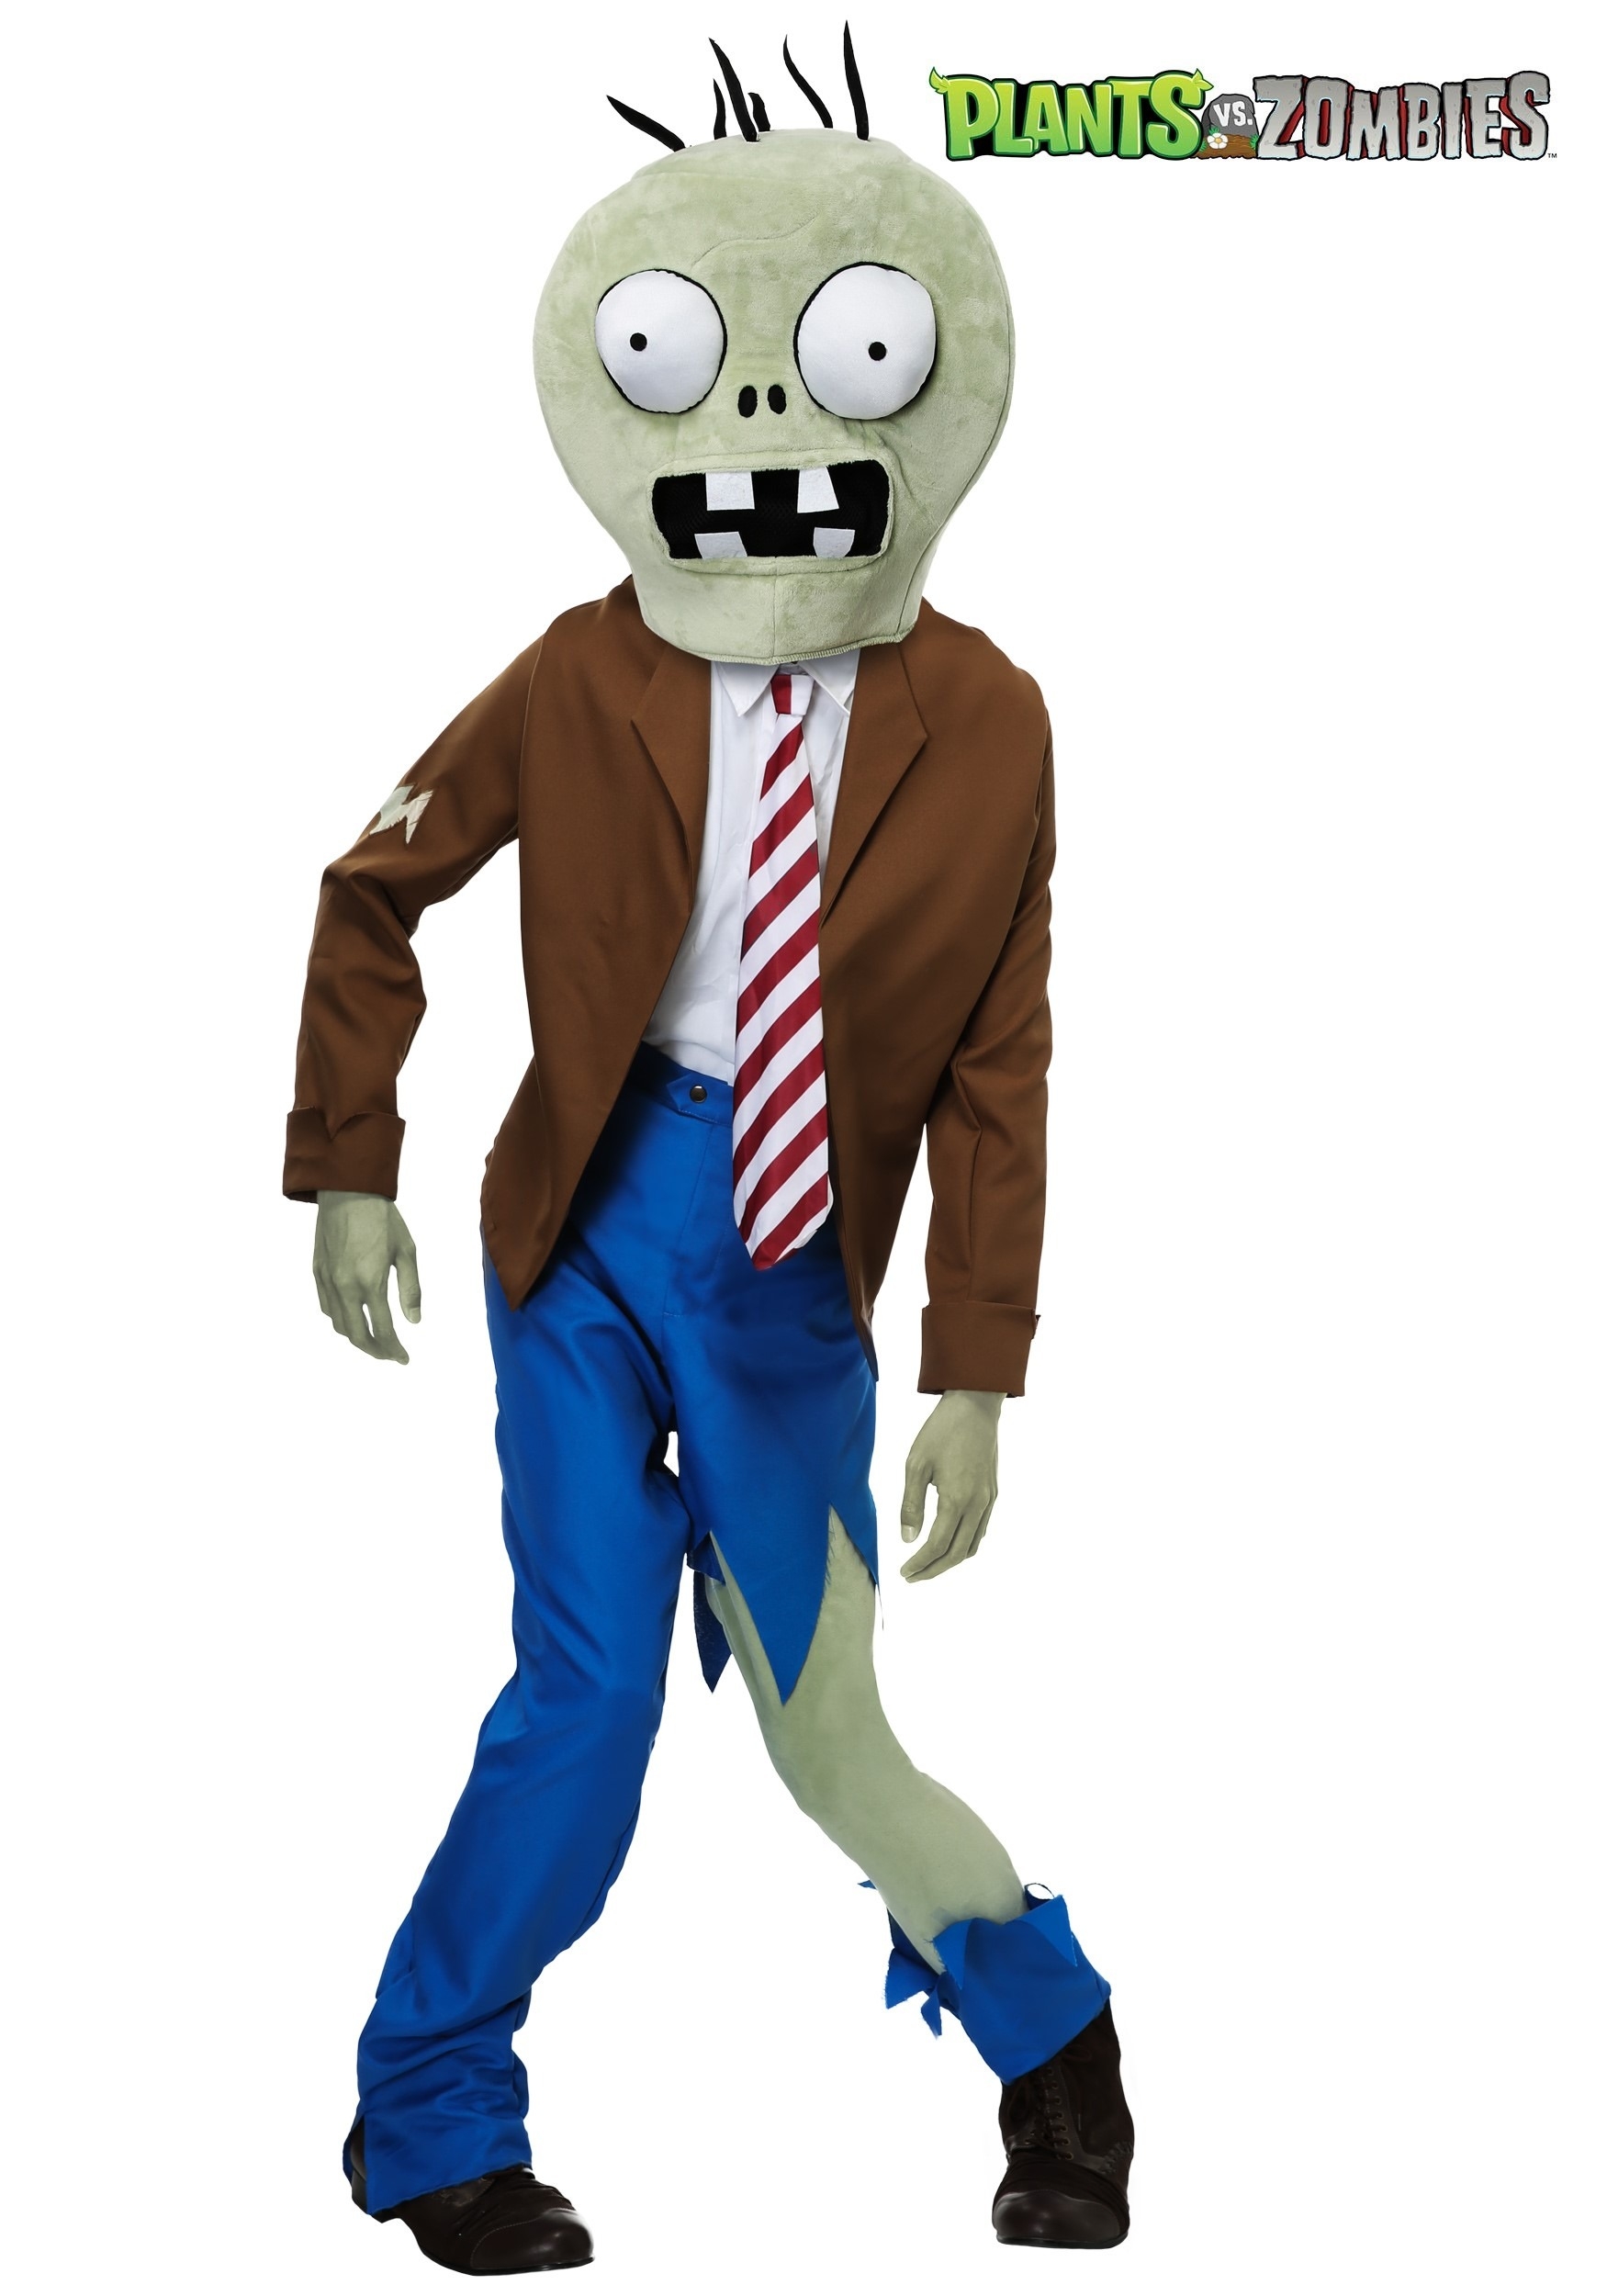 PLANTS VS ZOMBIES Zombie Adult Costume